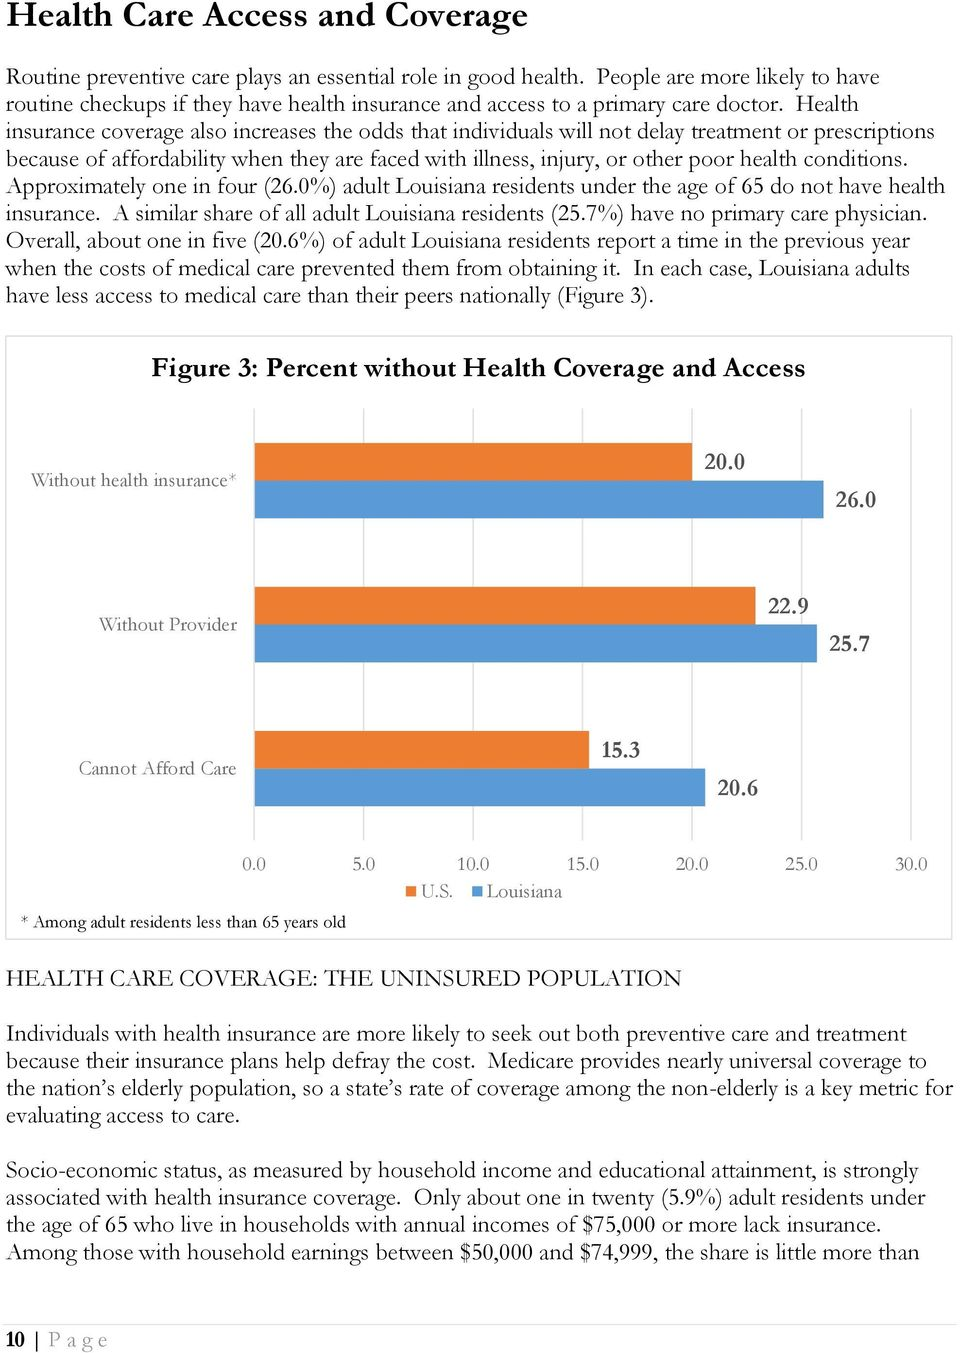 Health insurance coverage also increases the odds that individuals will not delay treatment or prescriptions because of affordability when they are faced with illness, injury, or other poor health